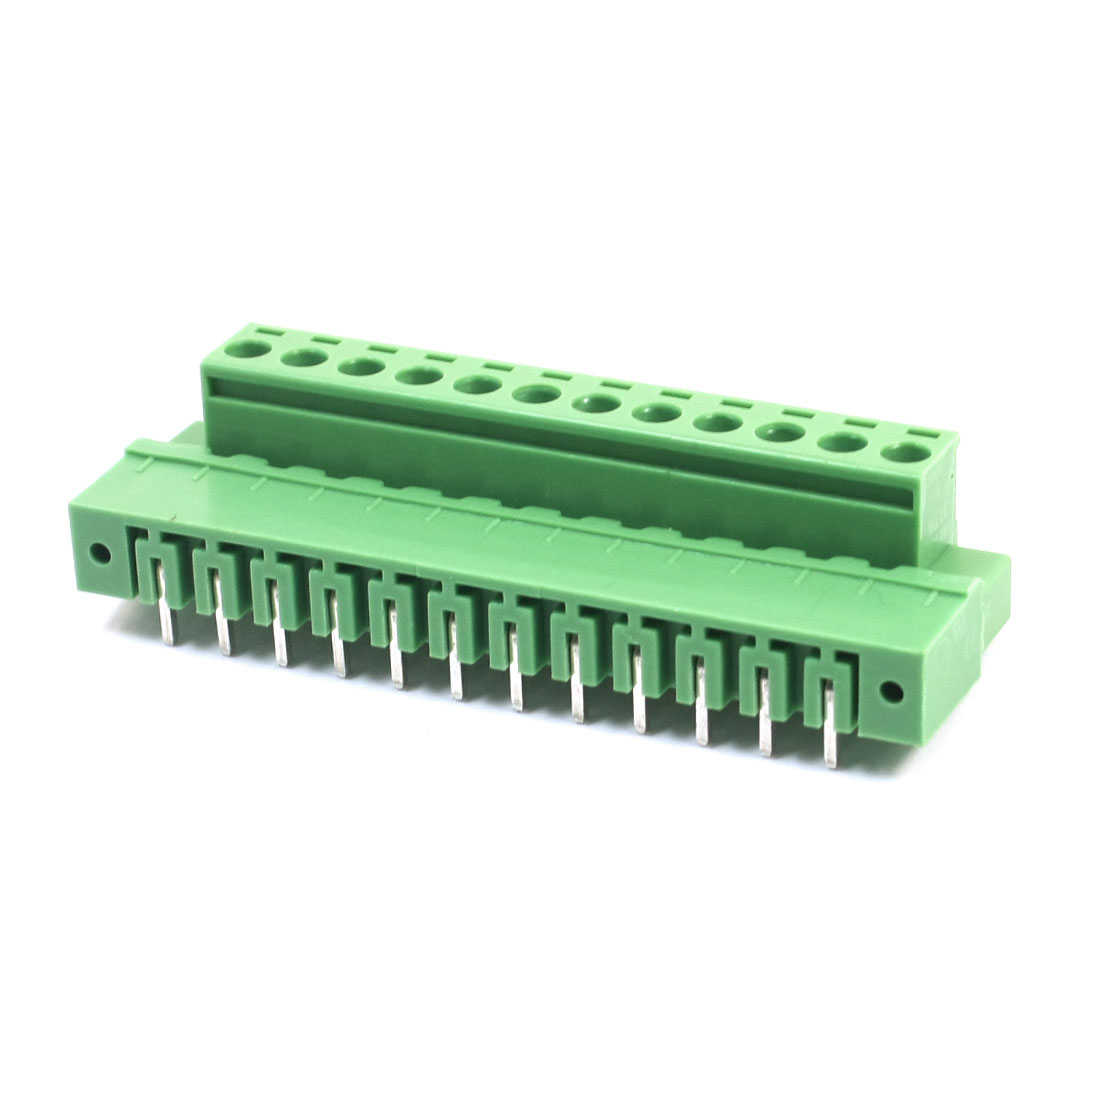 300V 10A 5.08mm Pitch 12Pin Green Plastic Right Angle Pluggable in Type PCB Mount Screw Terminal Barrier Block Connector